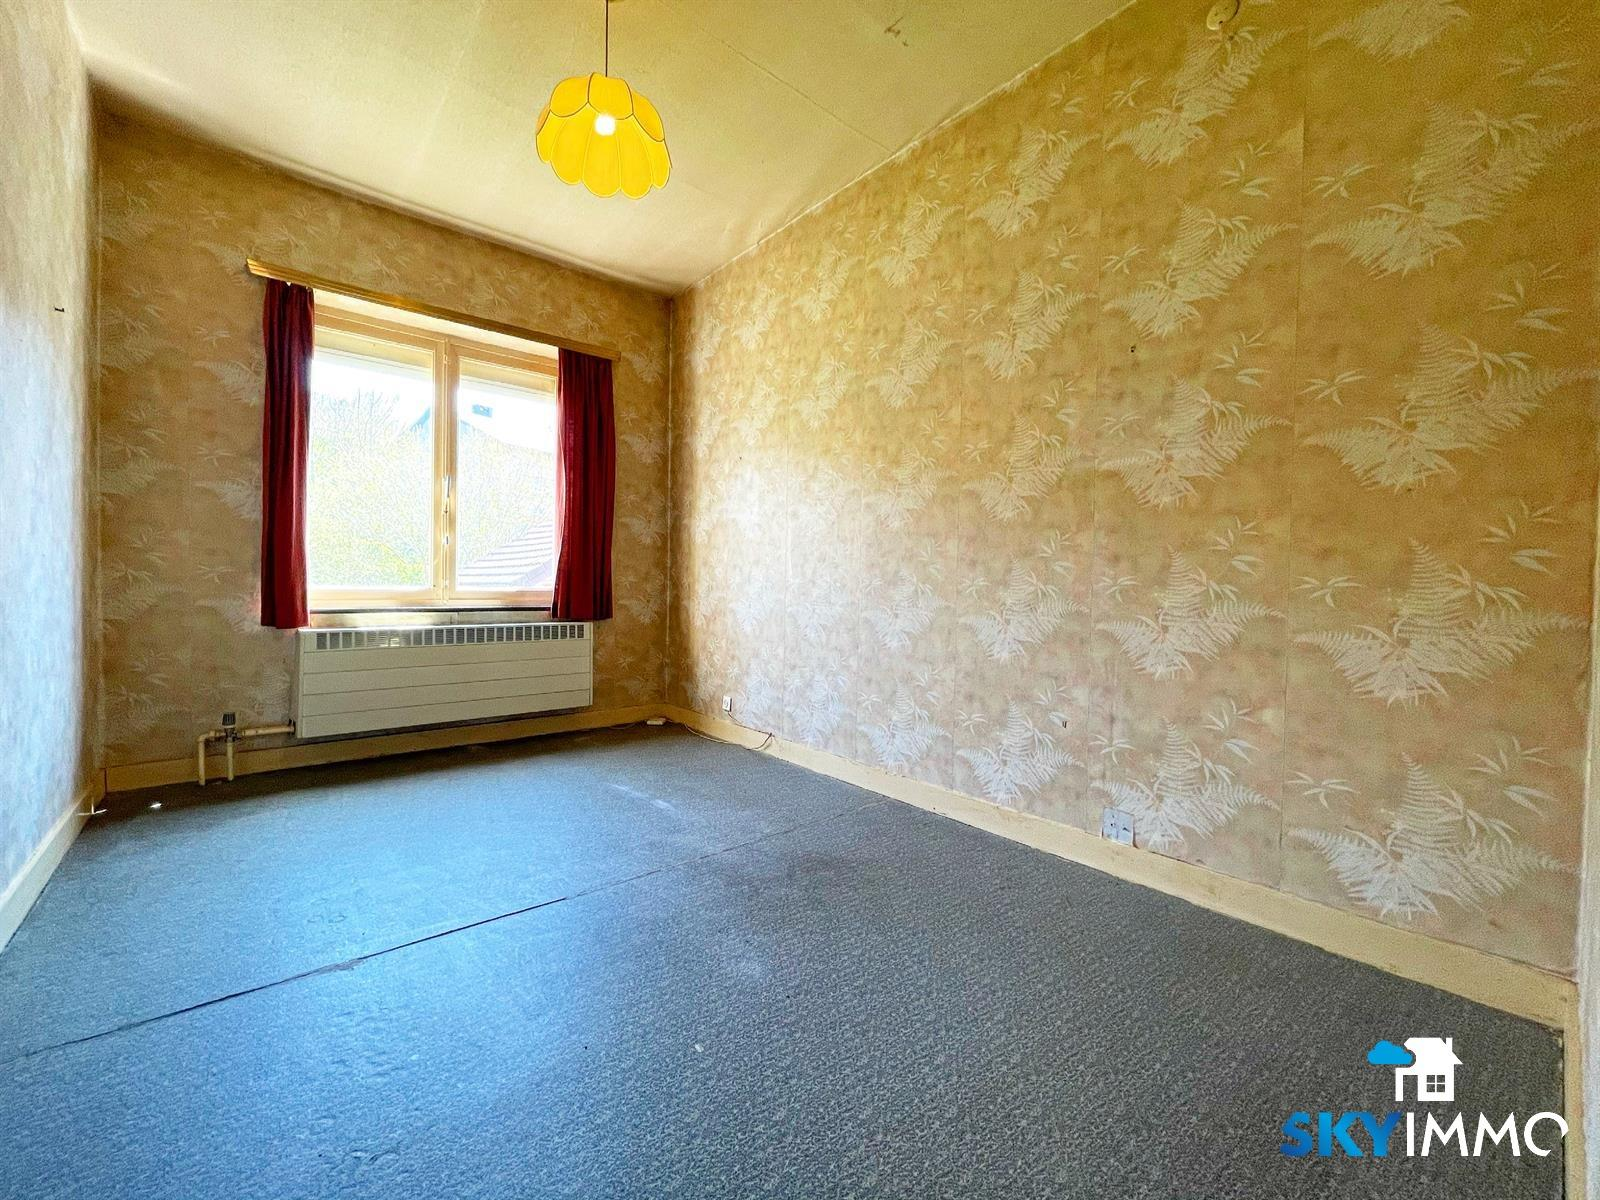 Huis - Flemalle - #4346611-28